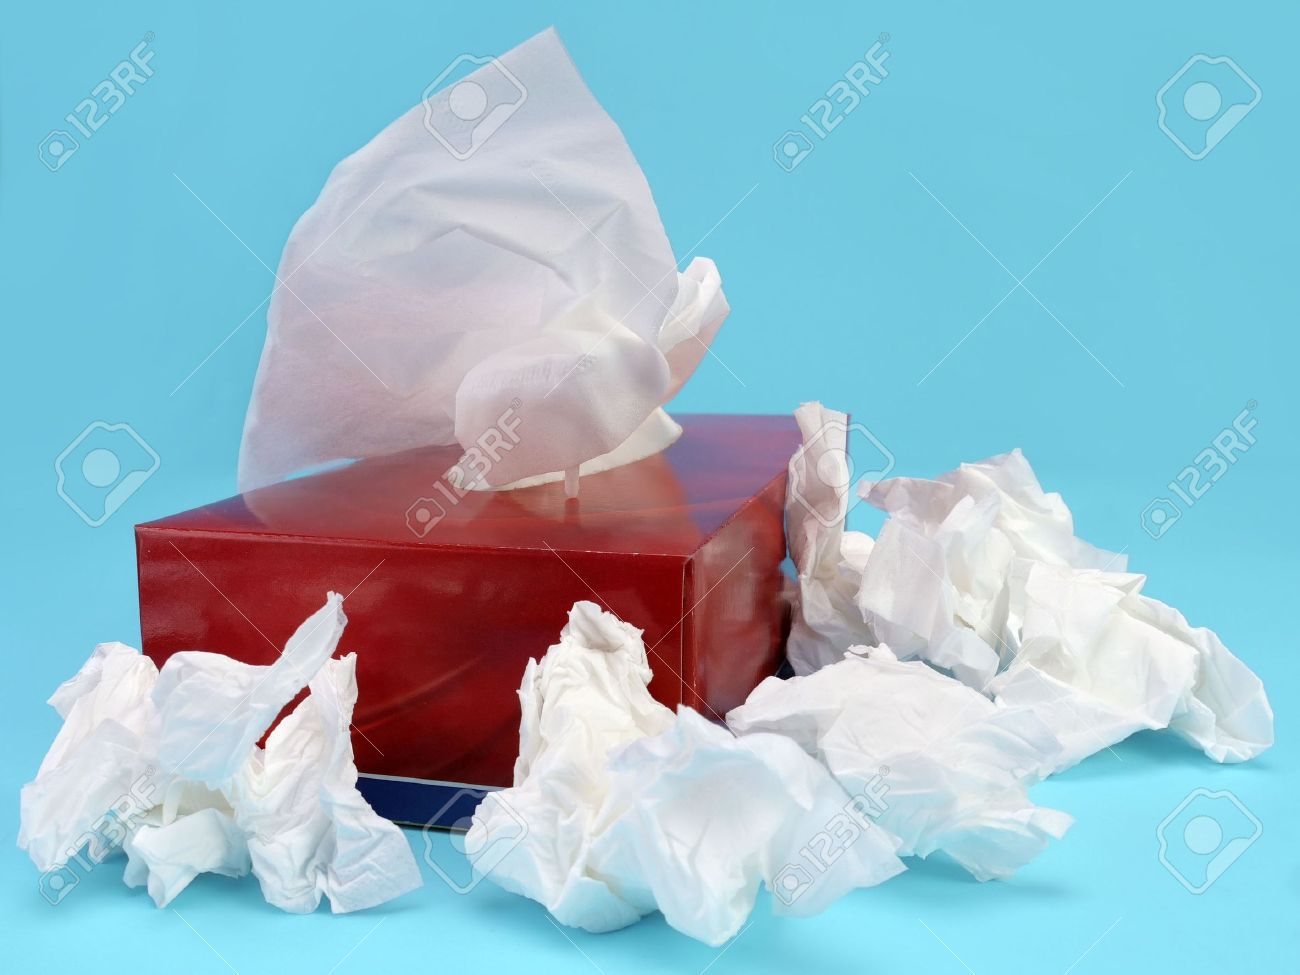 Paper tissue box with used tissues over light blue background Stock Photo - 4431642